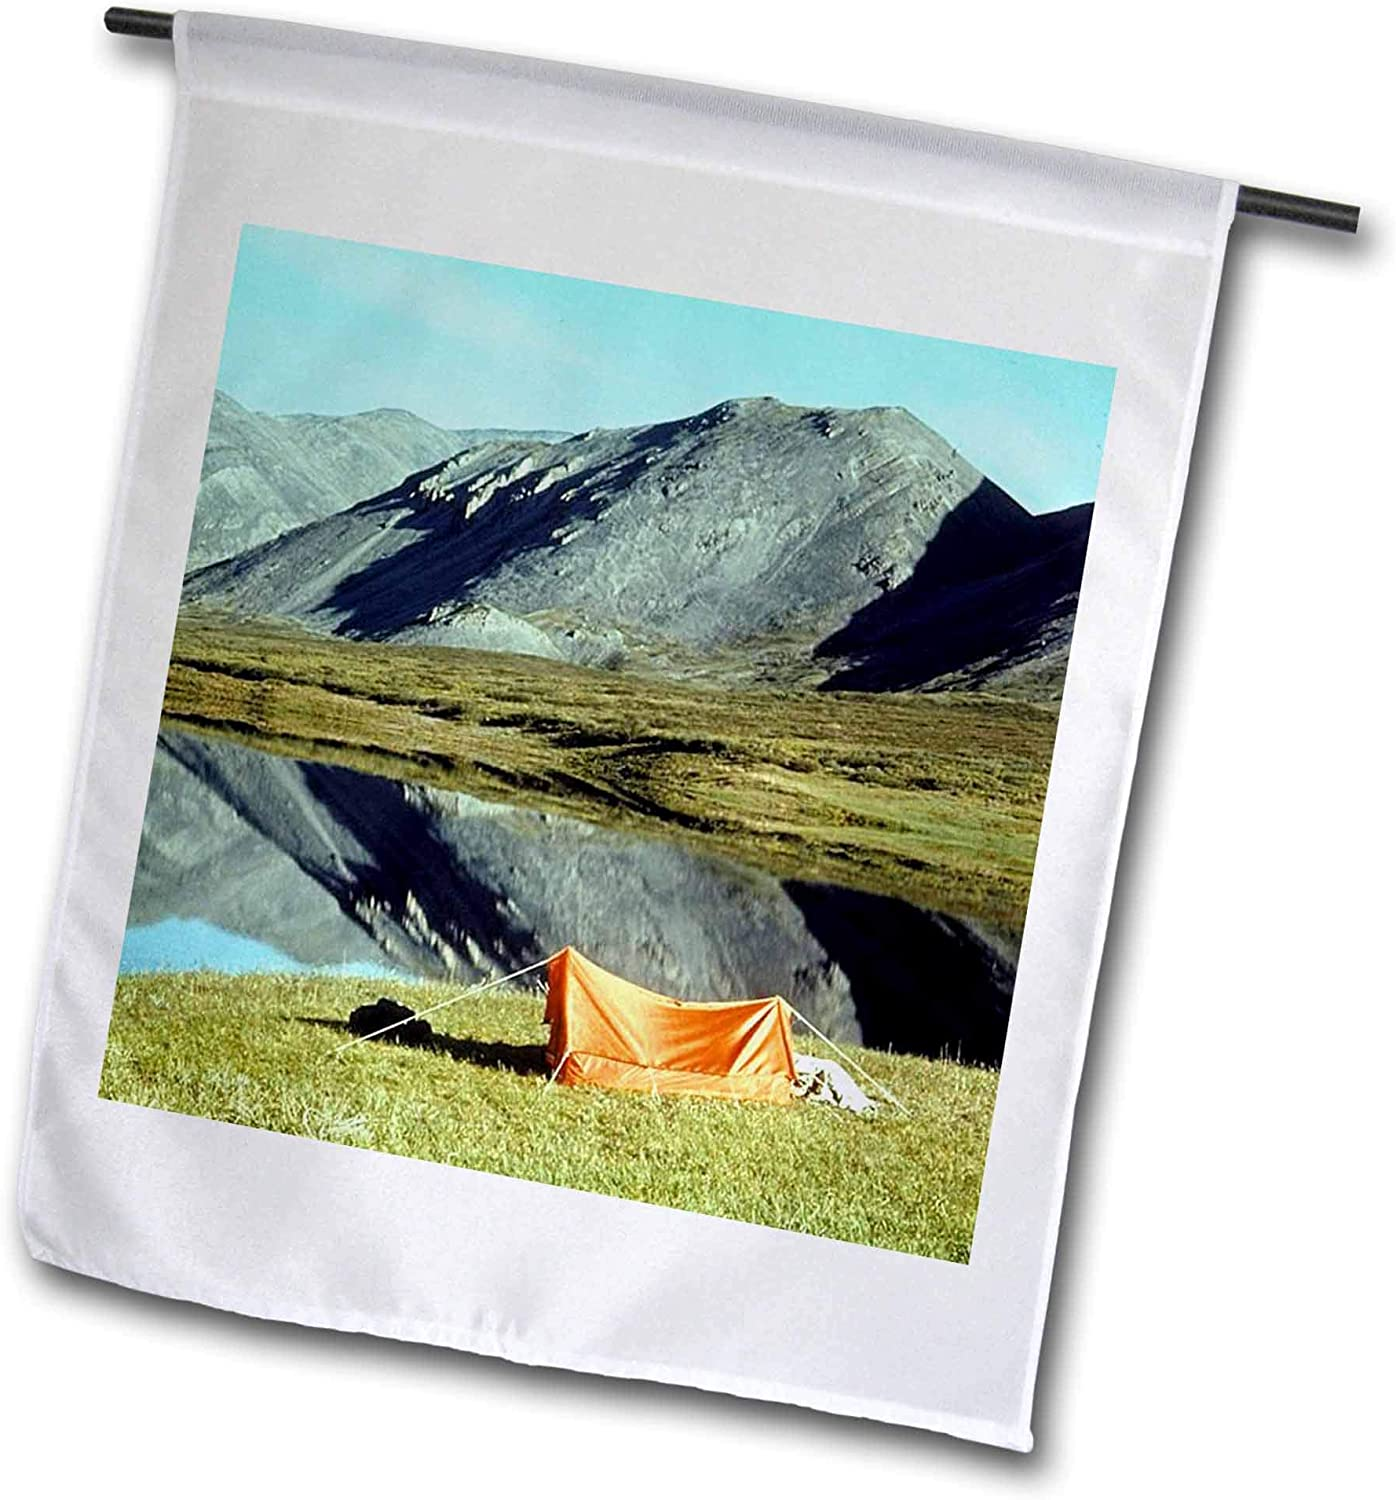 3dRose 2 Travel – Camping, Hiking, Biking Activities - Small Tent Camping by The Lake Mountain Reflection - 12 x 18 inch Garden Flag (fl_311401_1)